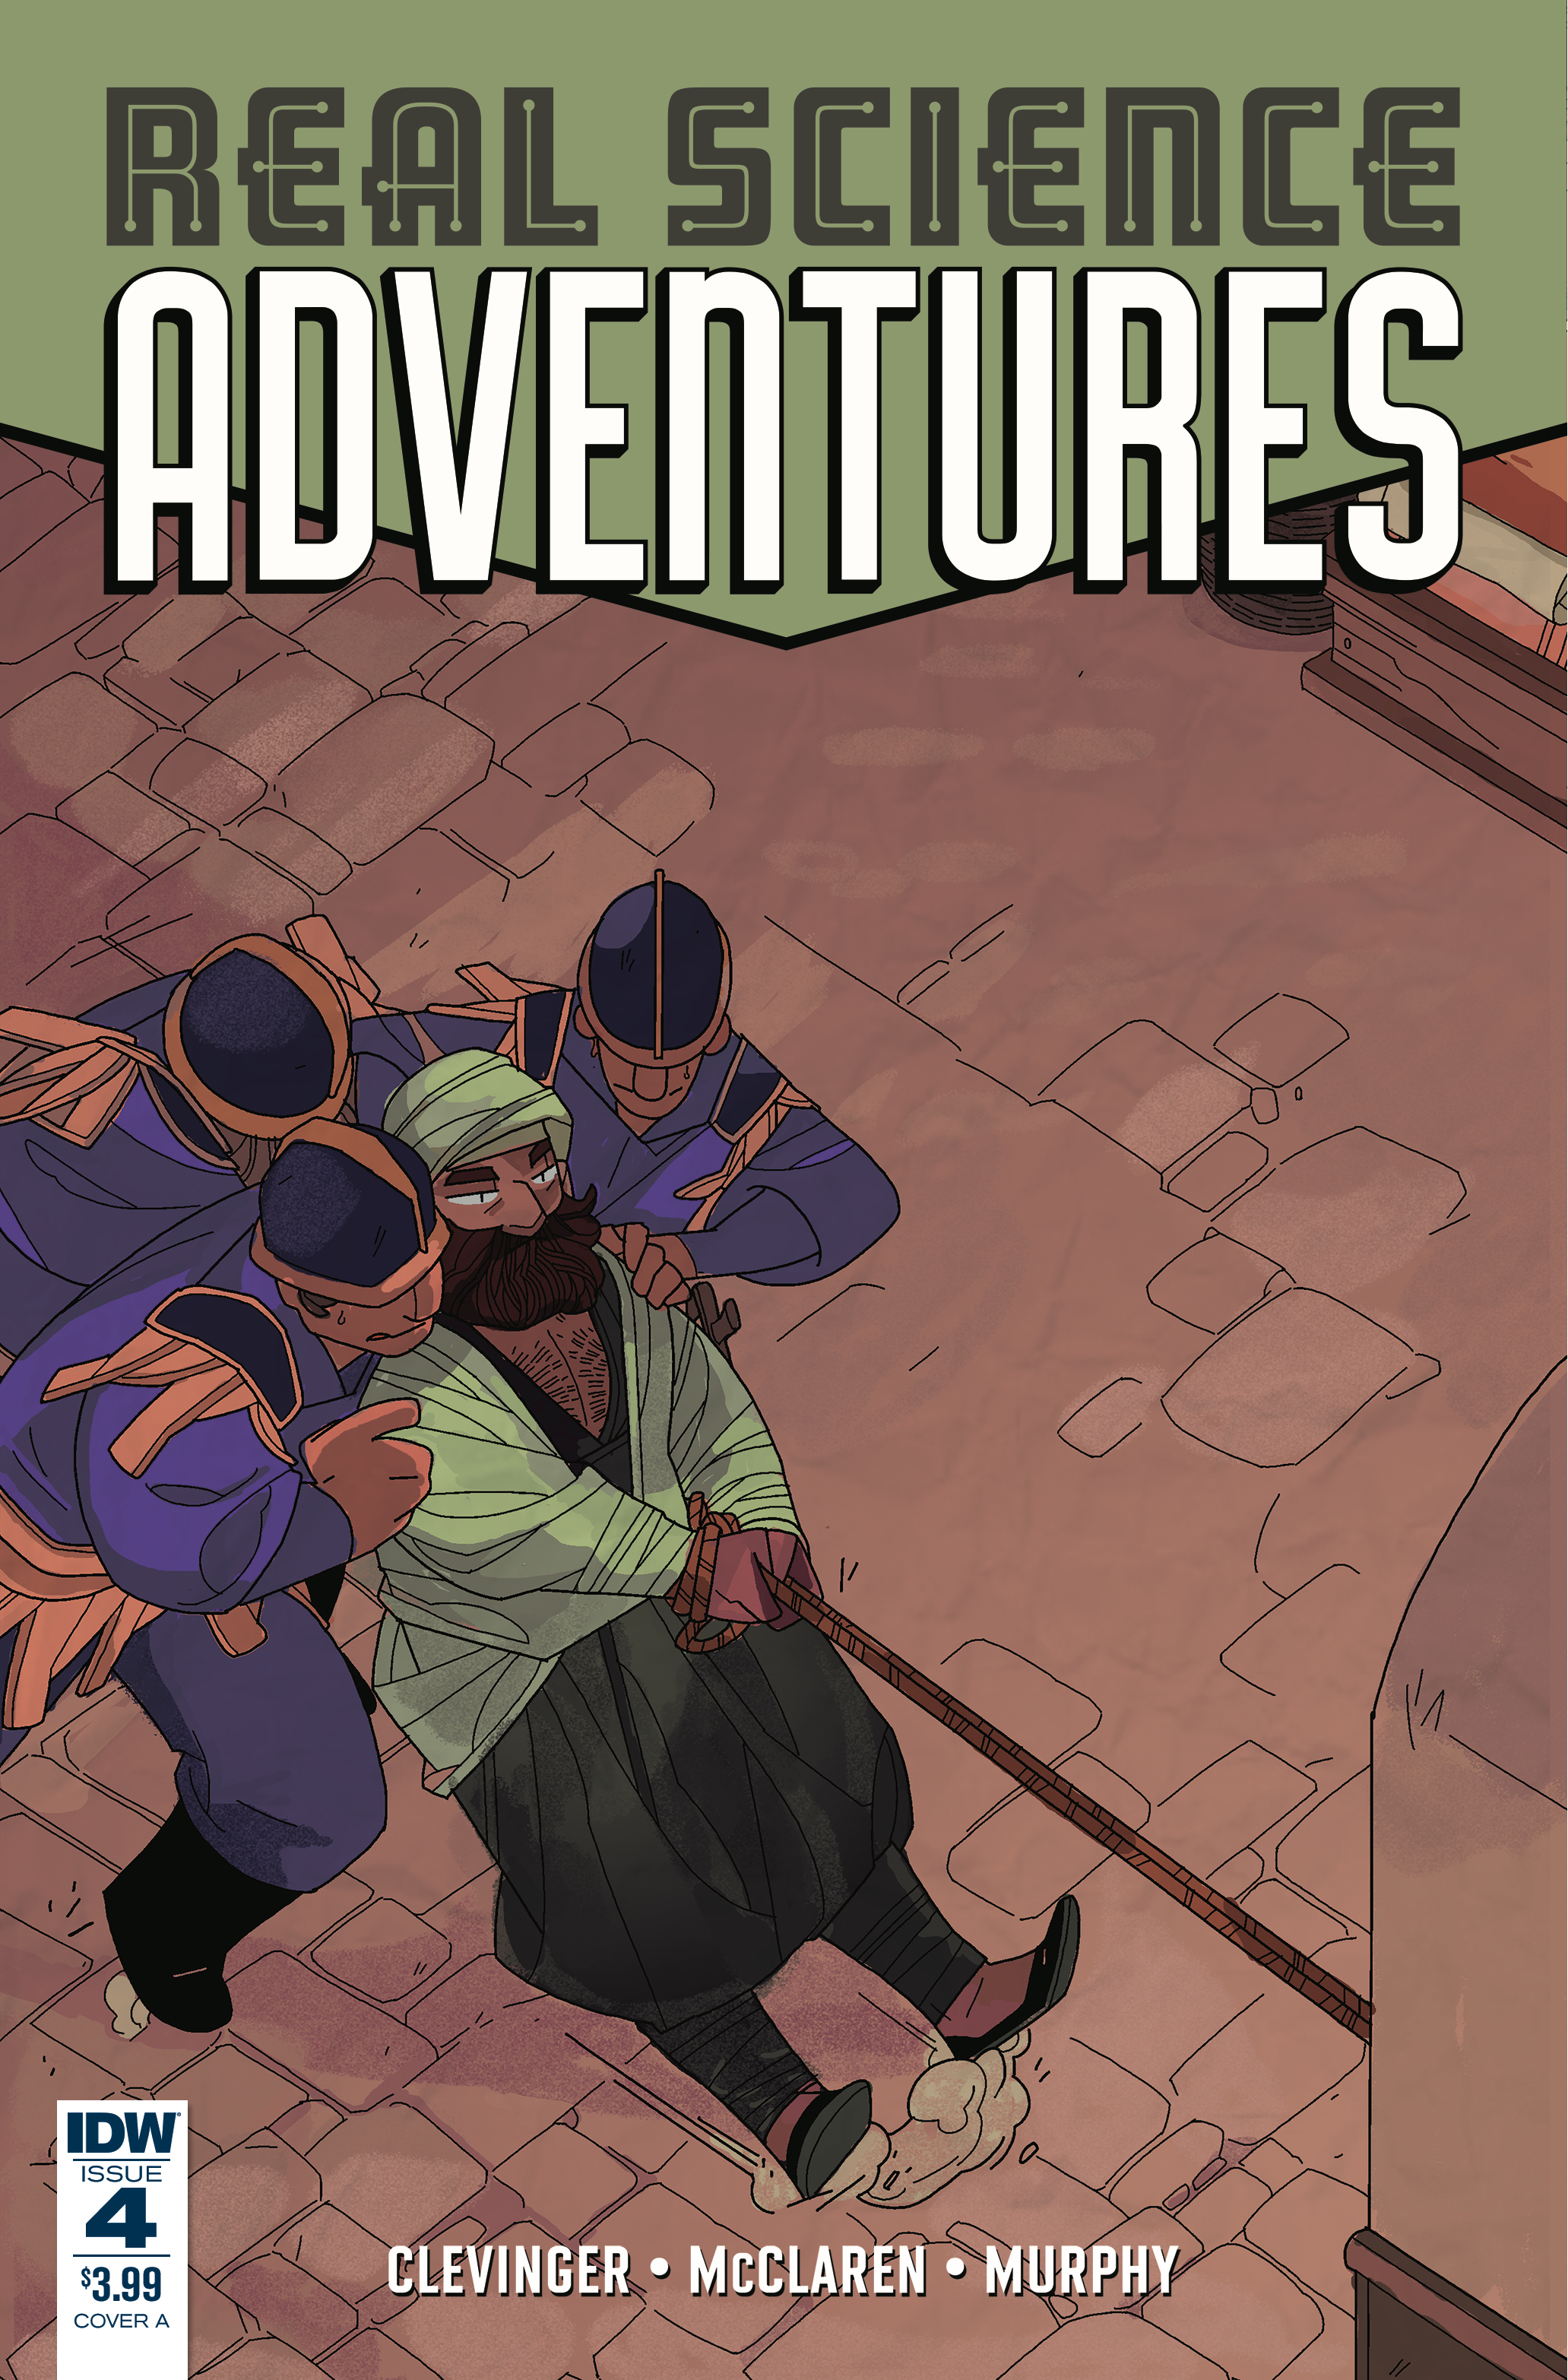 REAL SCIENCE ADVENTURES NICODEMUS JOB #4 CVR A MCCLAREN